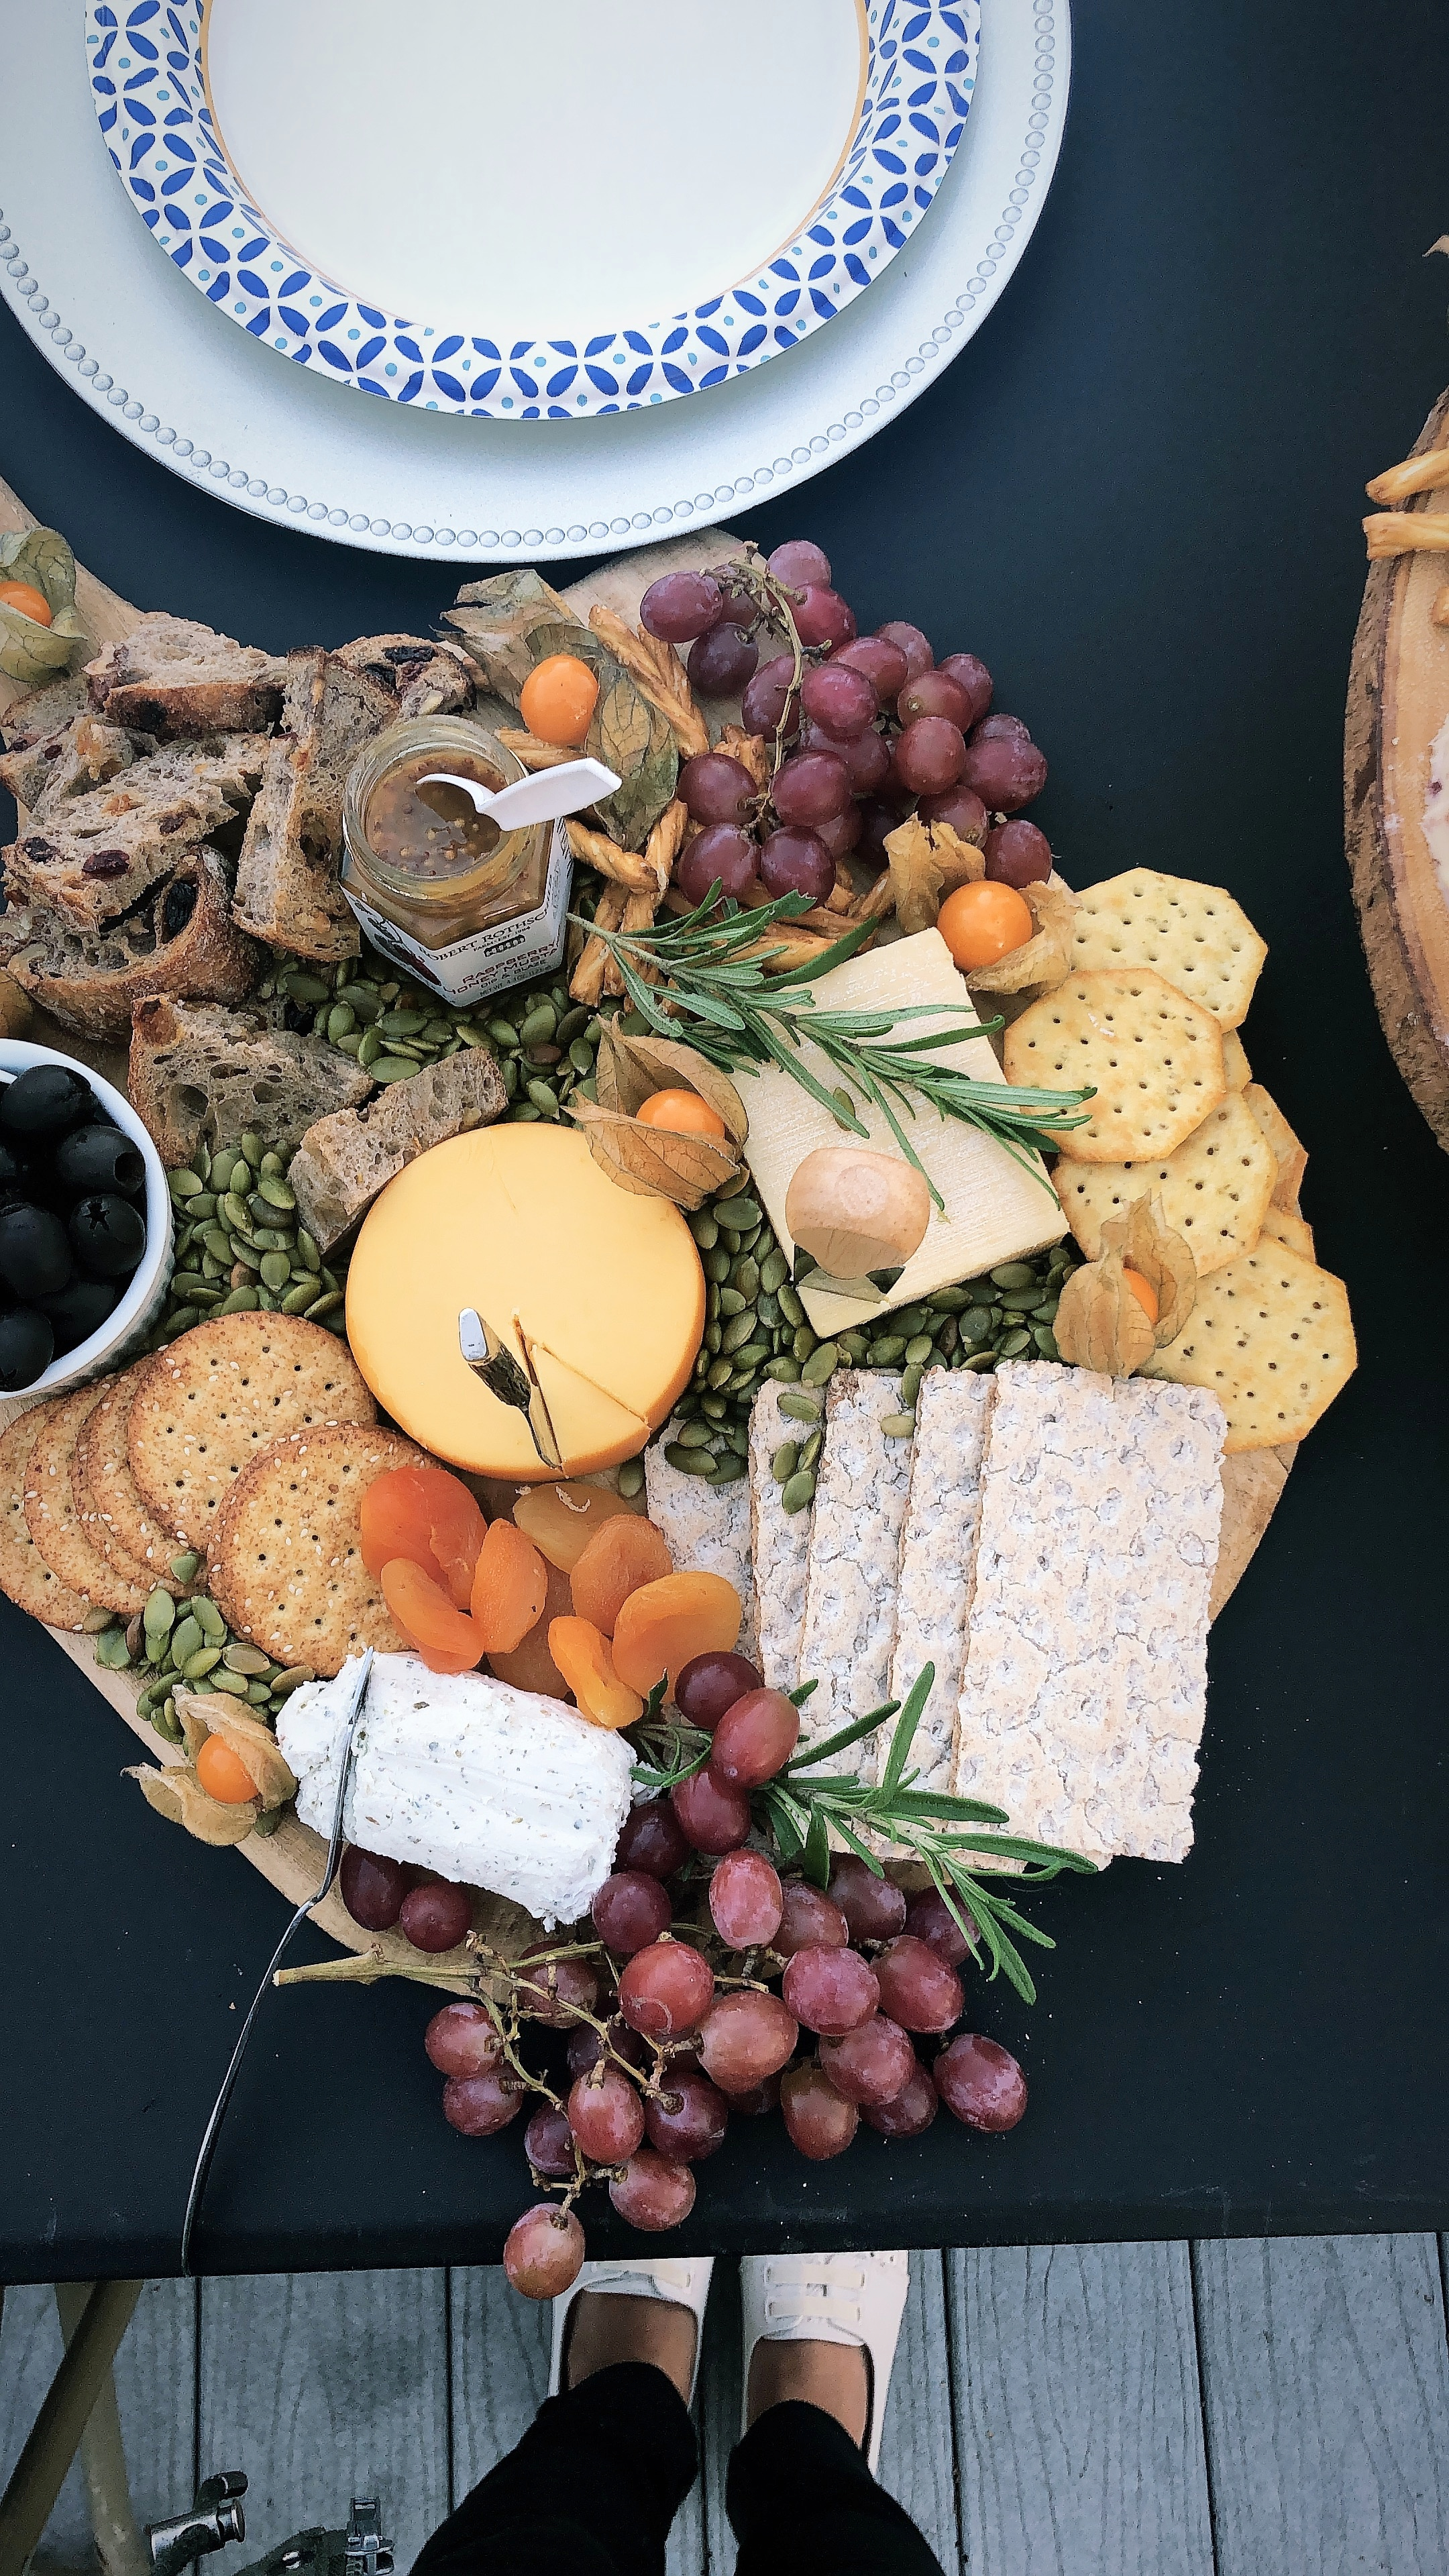 How To Build A Holiday Cheese Board